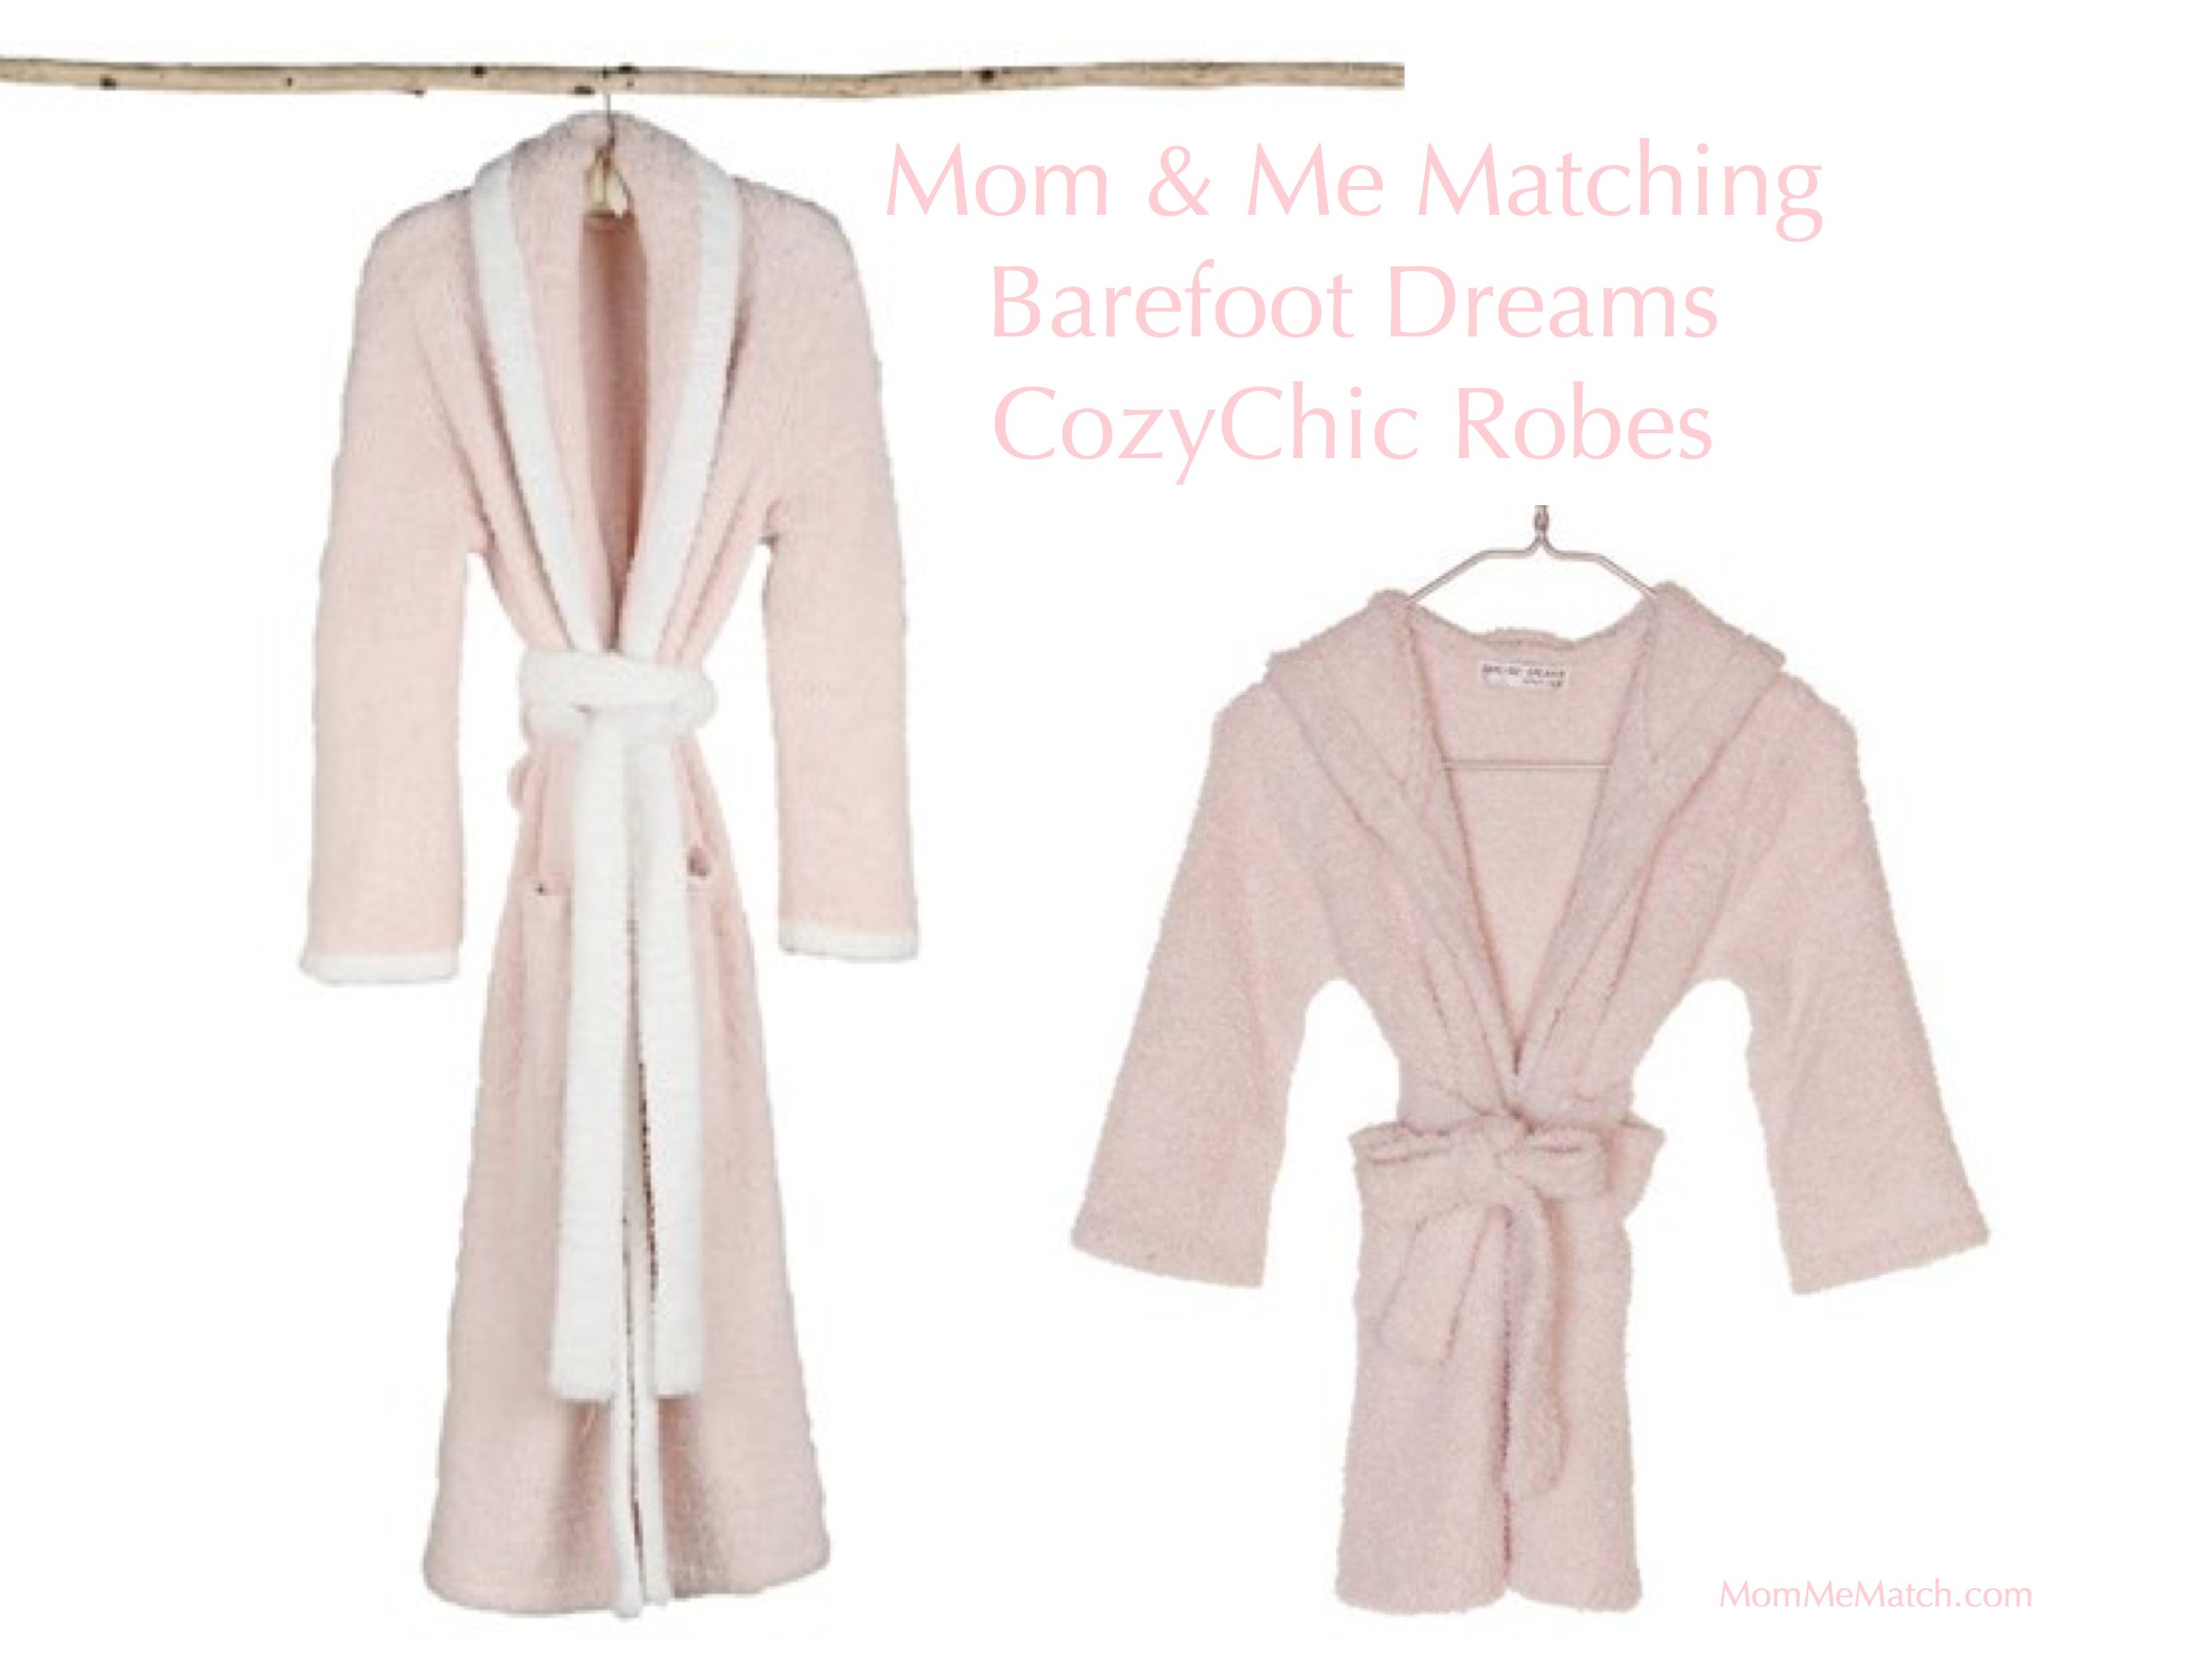 Mom & Me Matching Barefoot Dreams CozyChic Robes